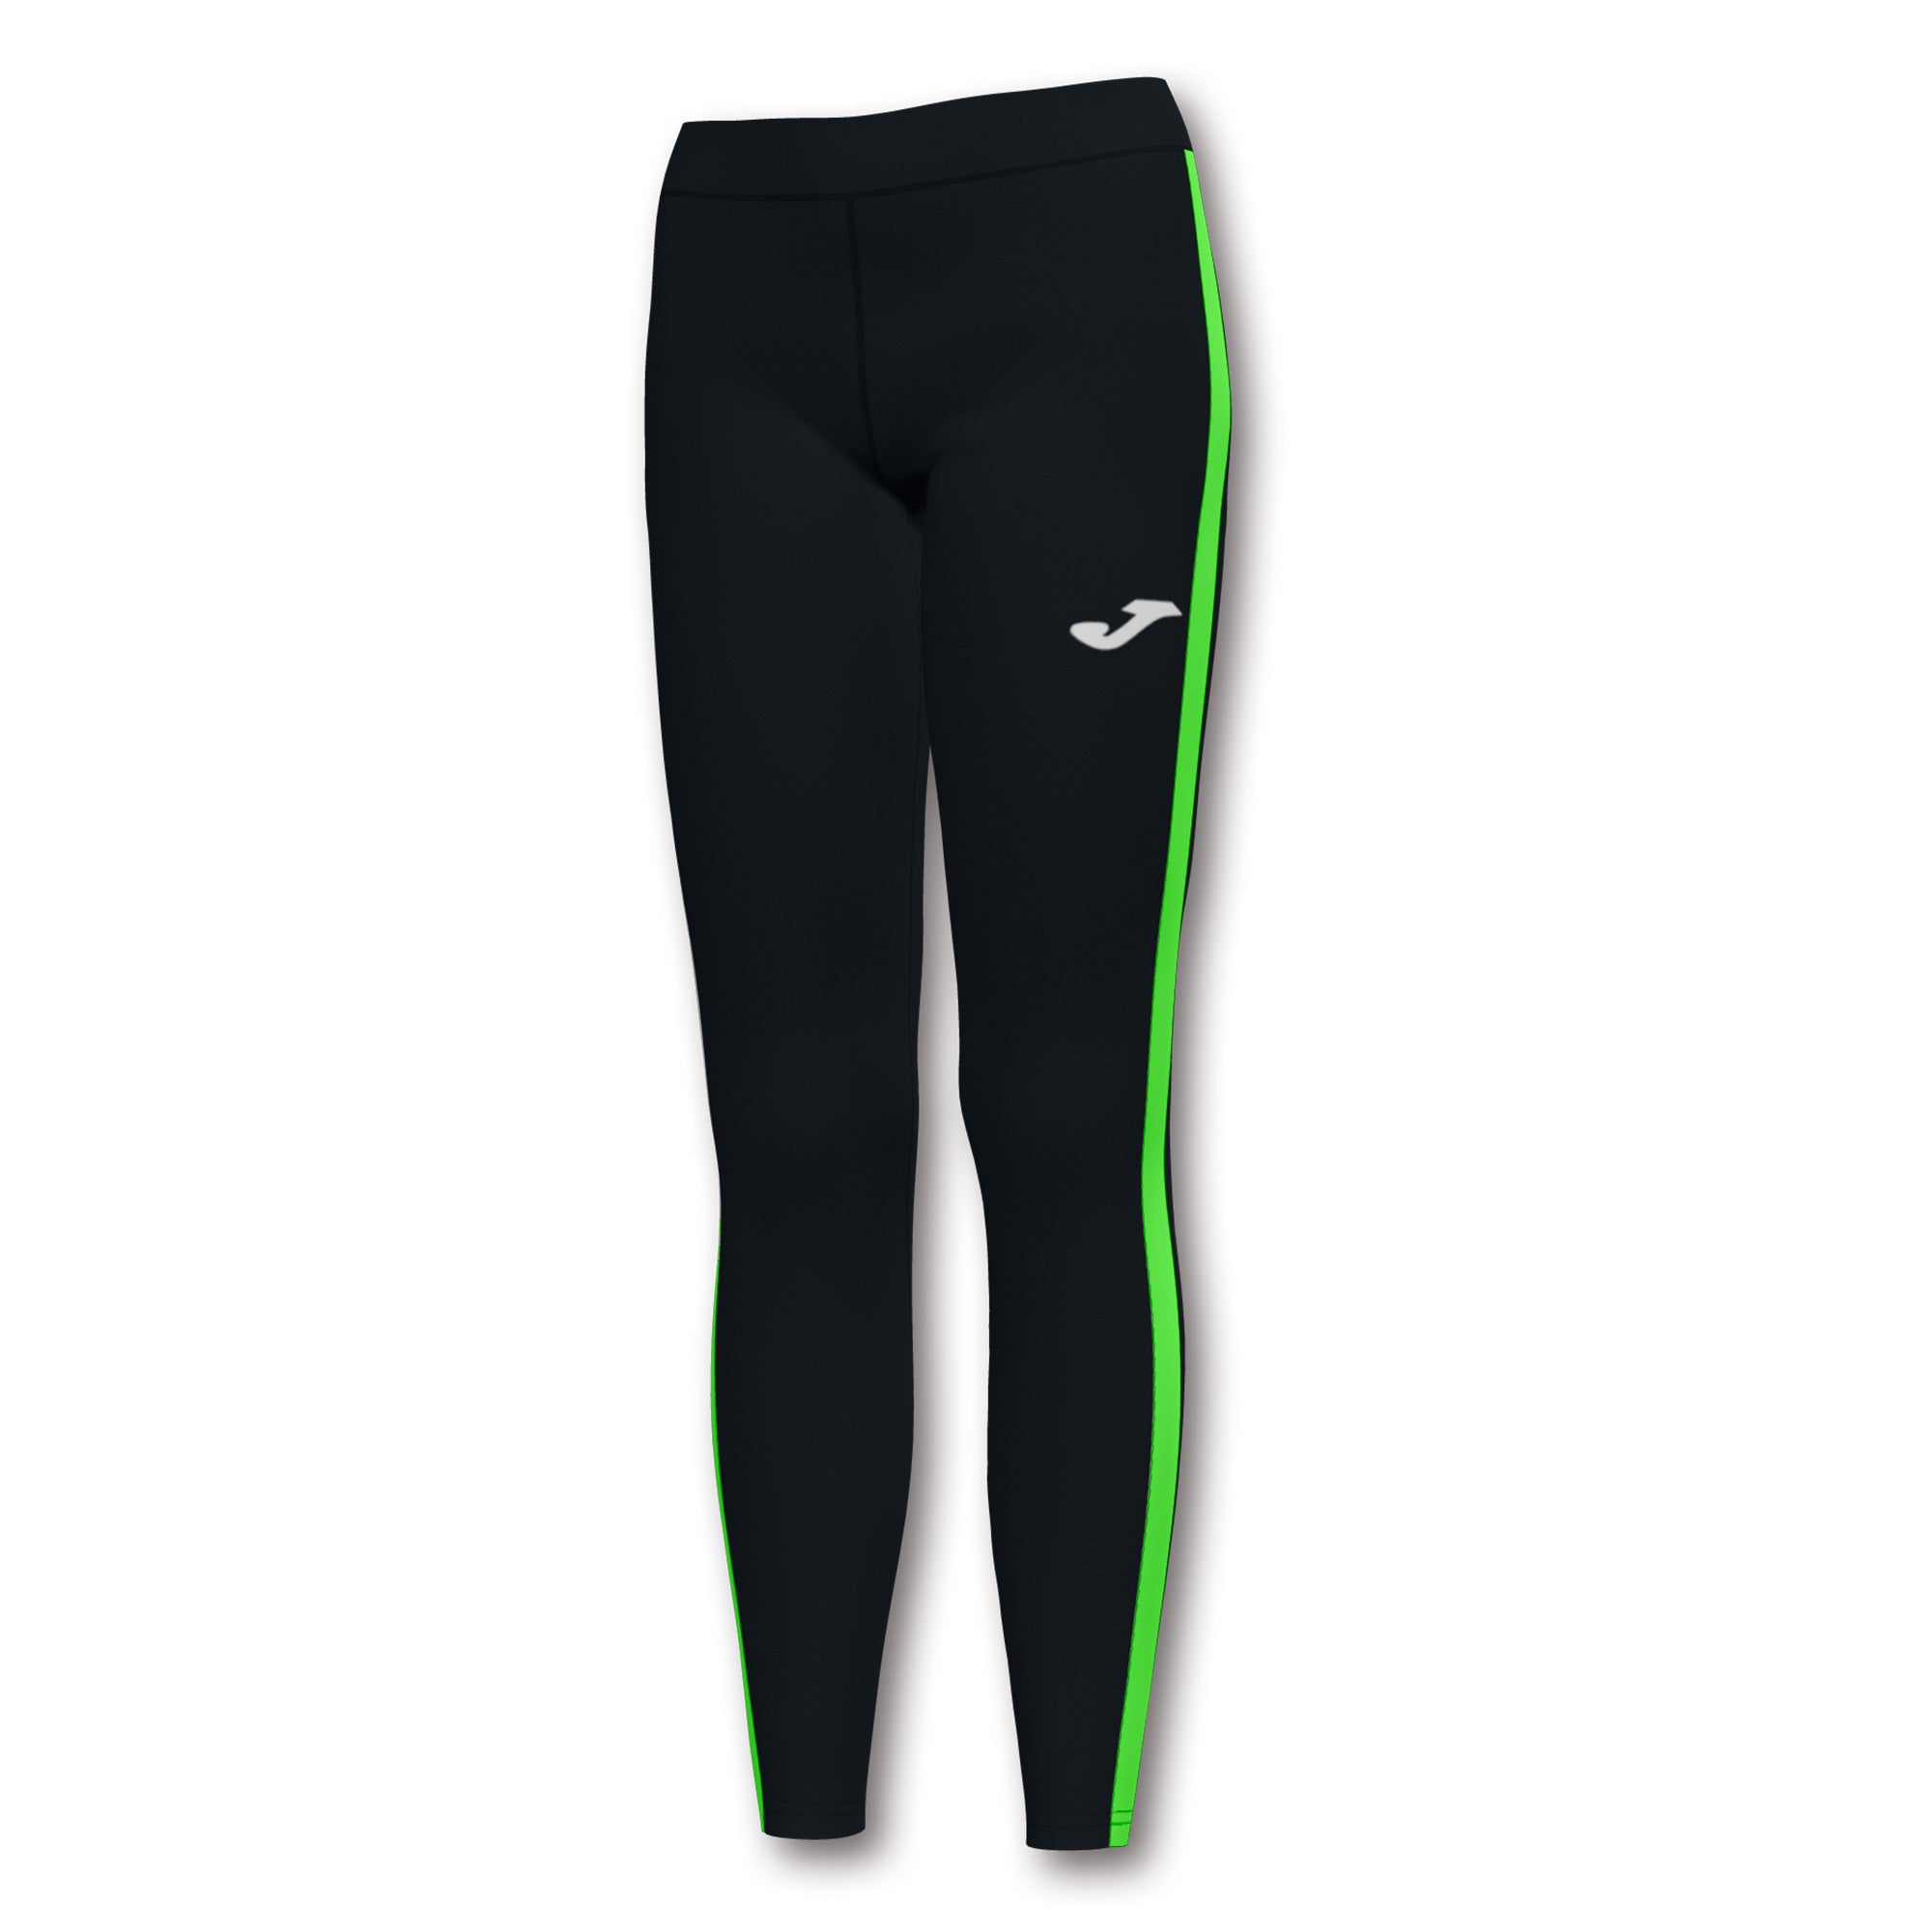 Collant lunghi Elite VII nero-verde-fluorescente (Uomo/Donna)